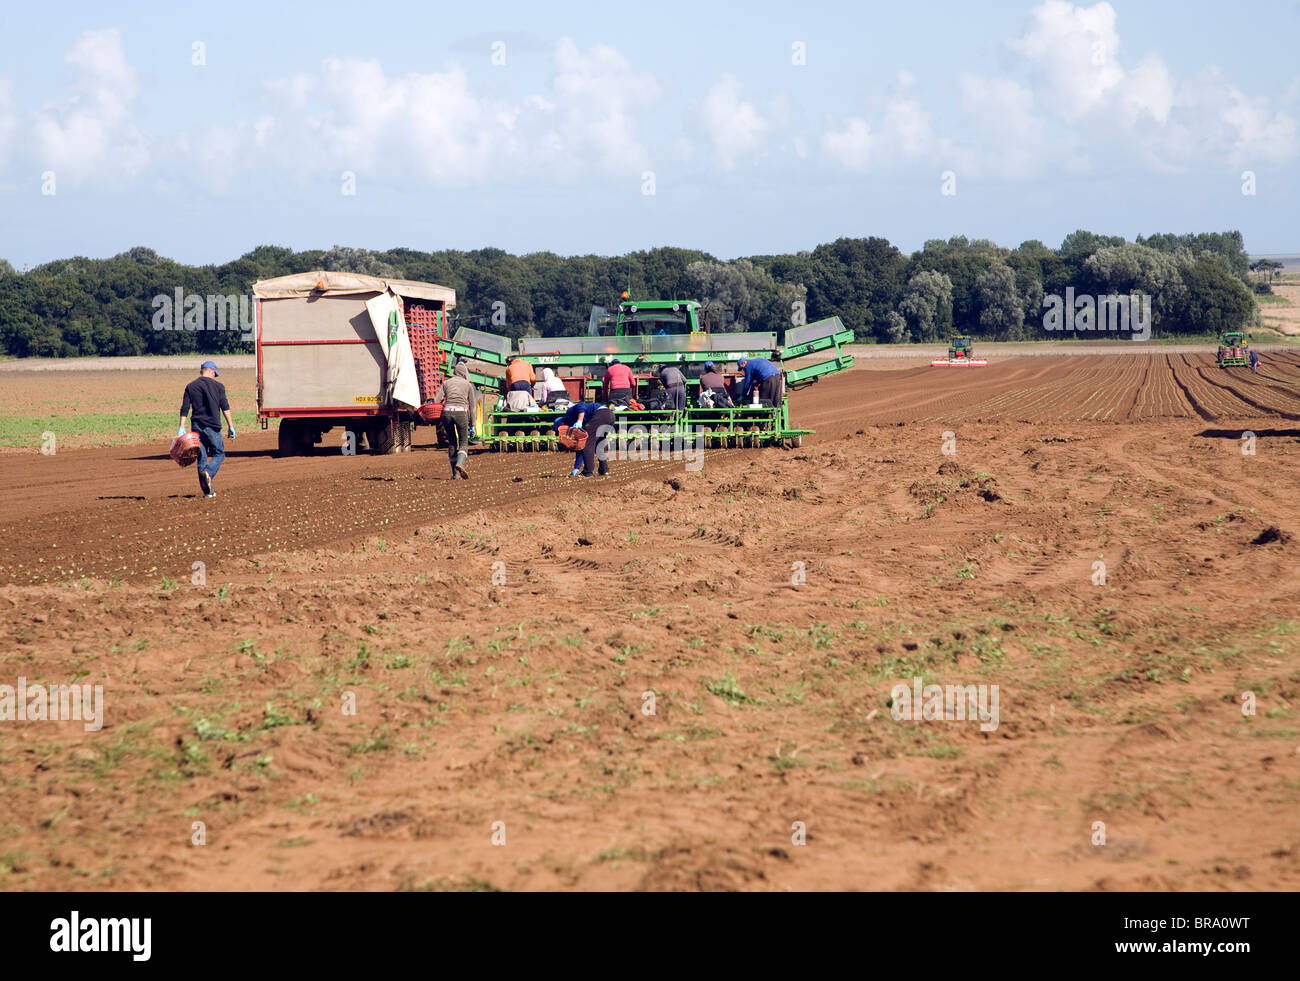 Migrant workers planting seedlings, Alderton, Suffolk, England - Stock Image